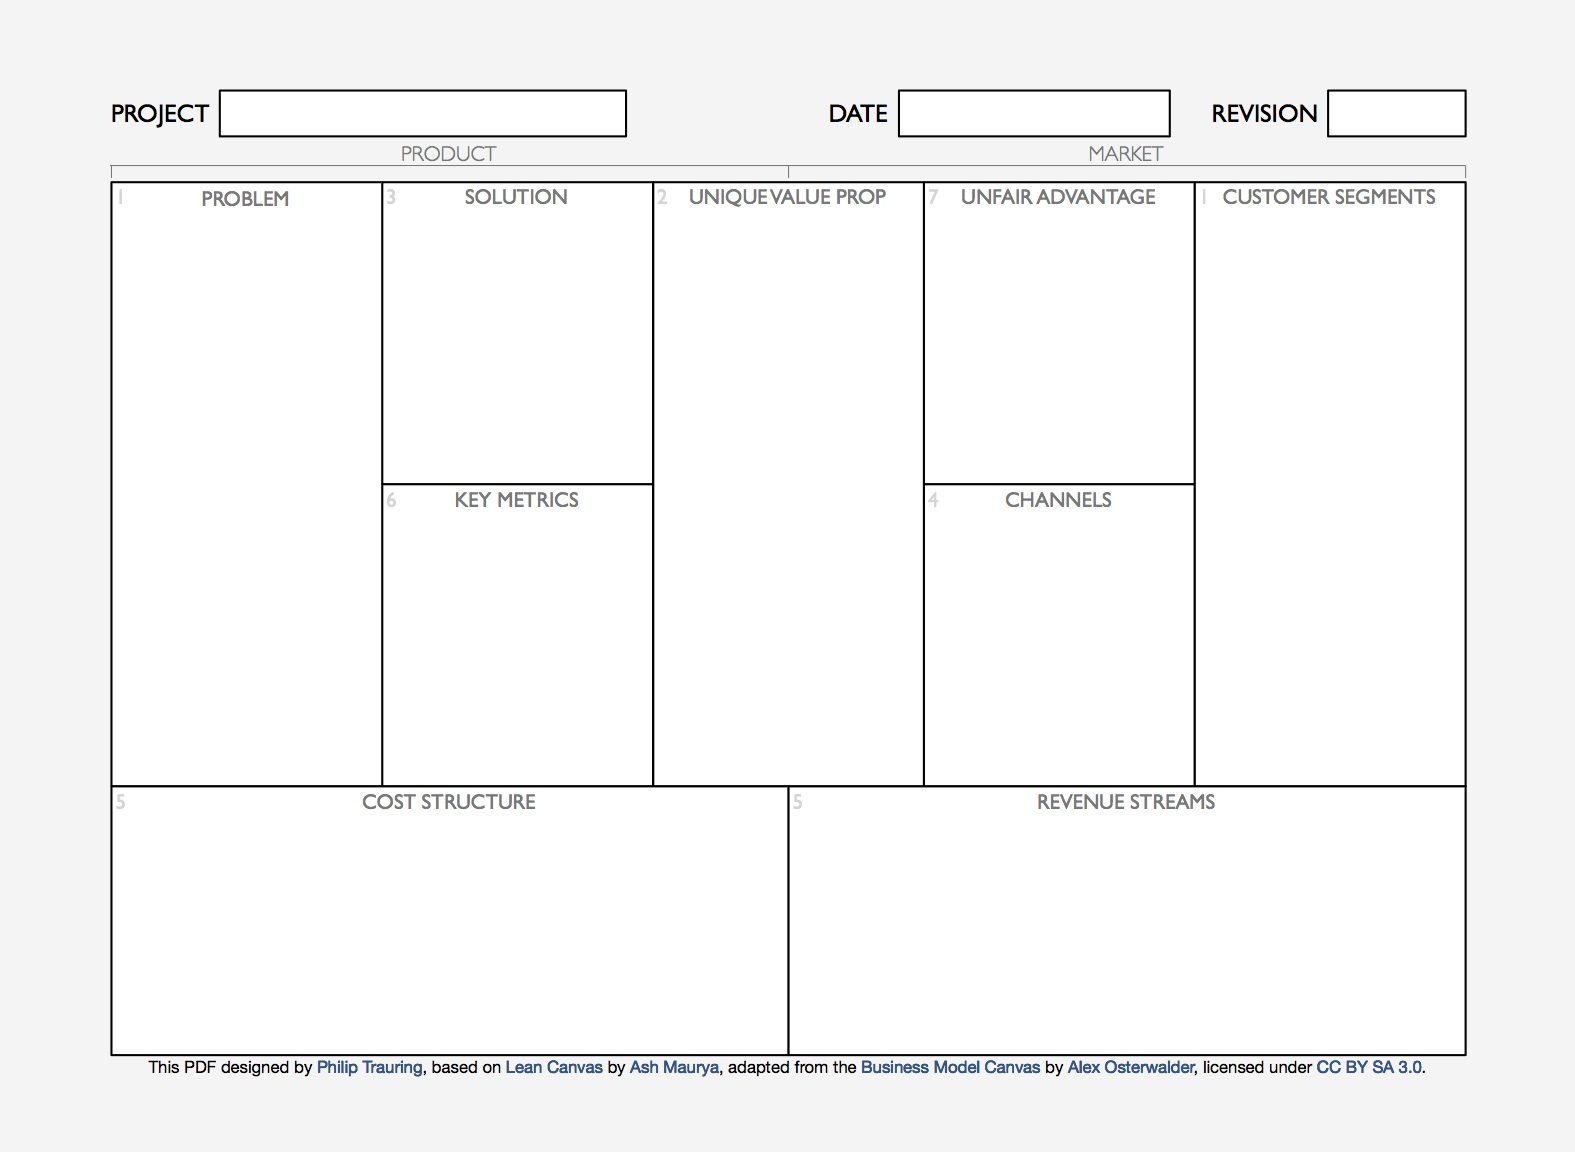 Lean canvas powerpoint template 2.